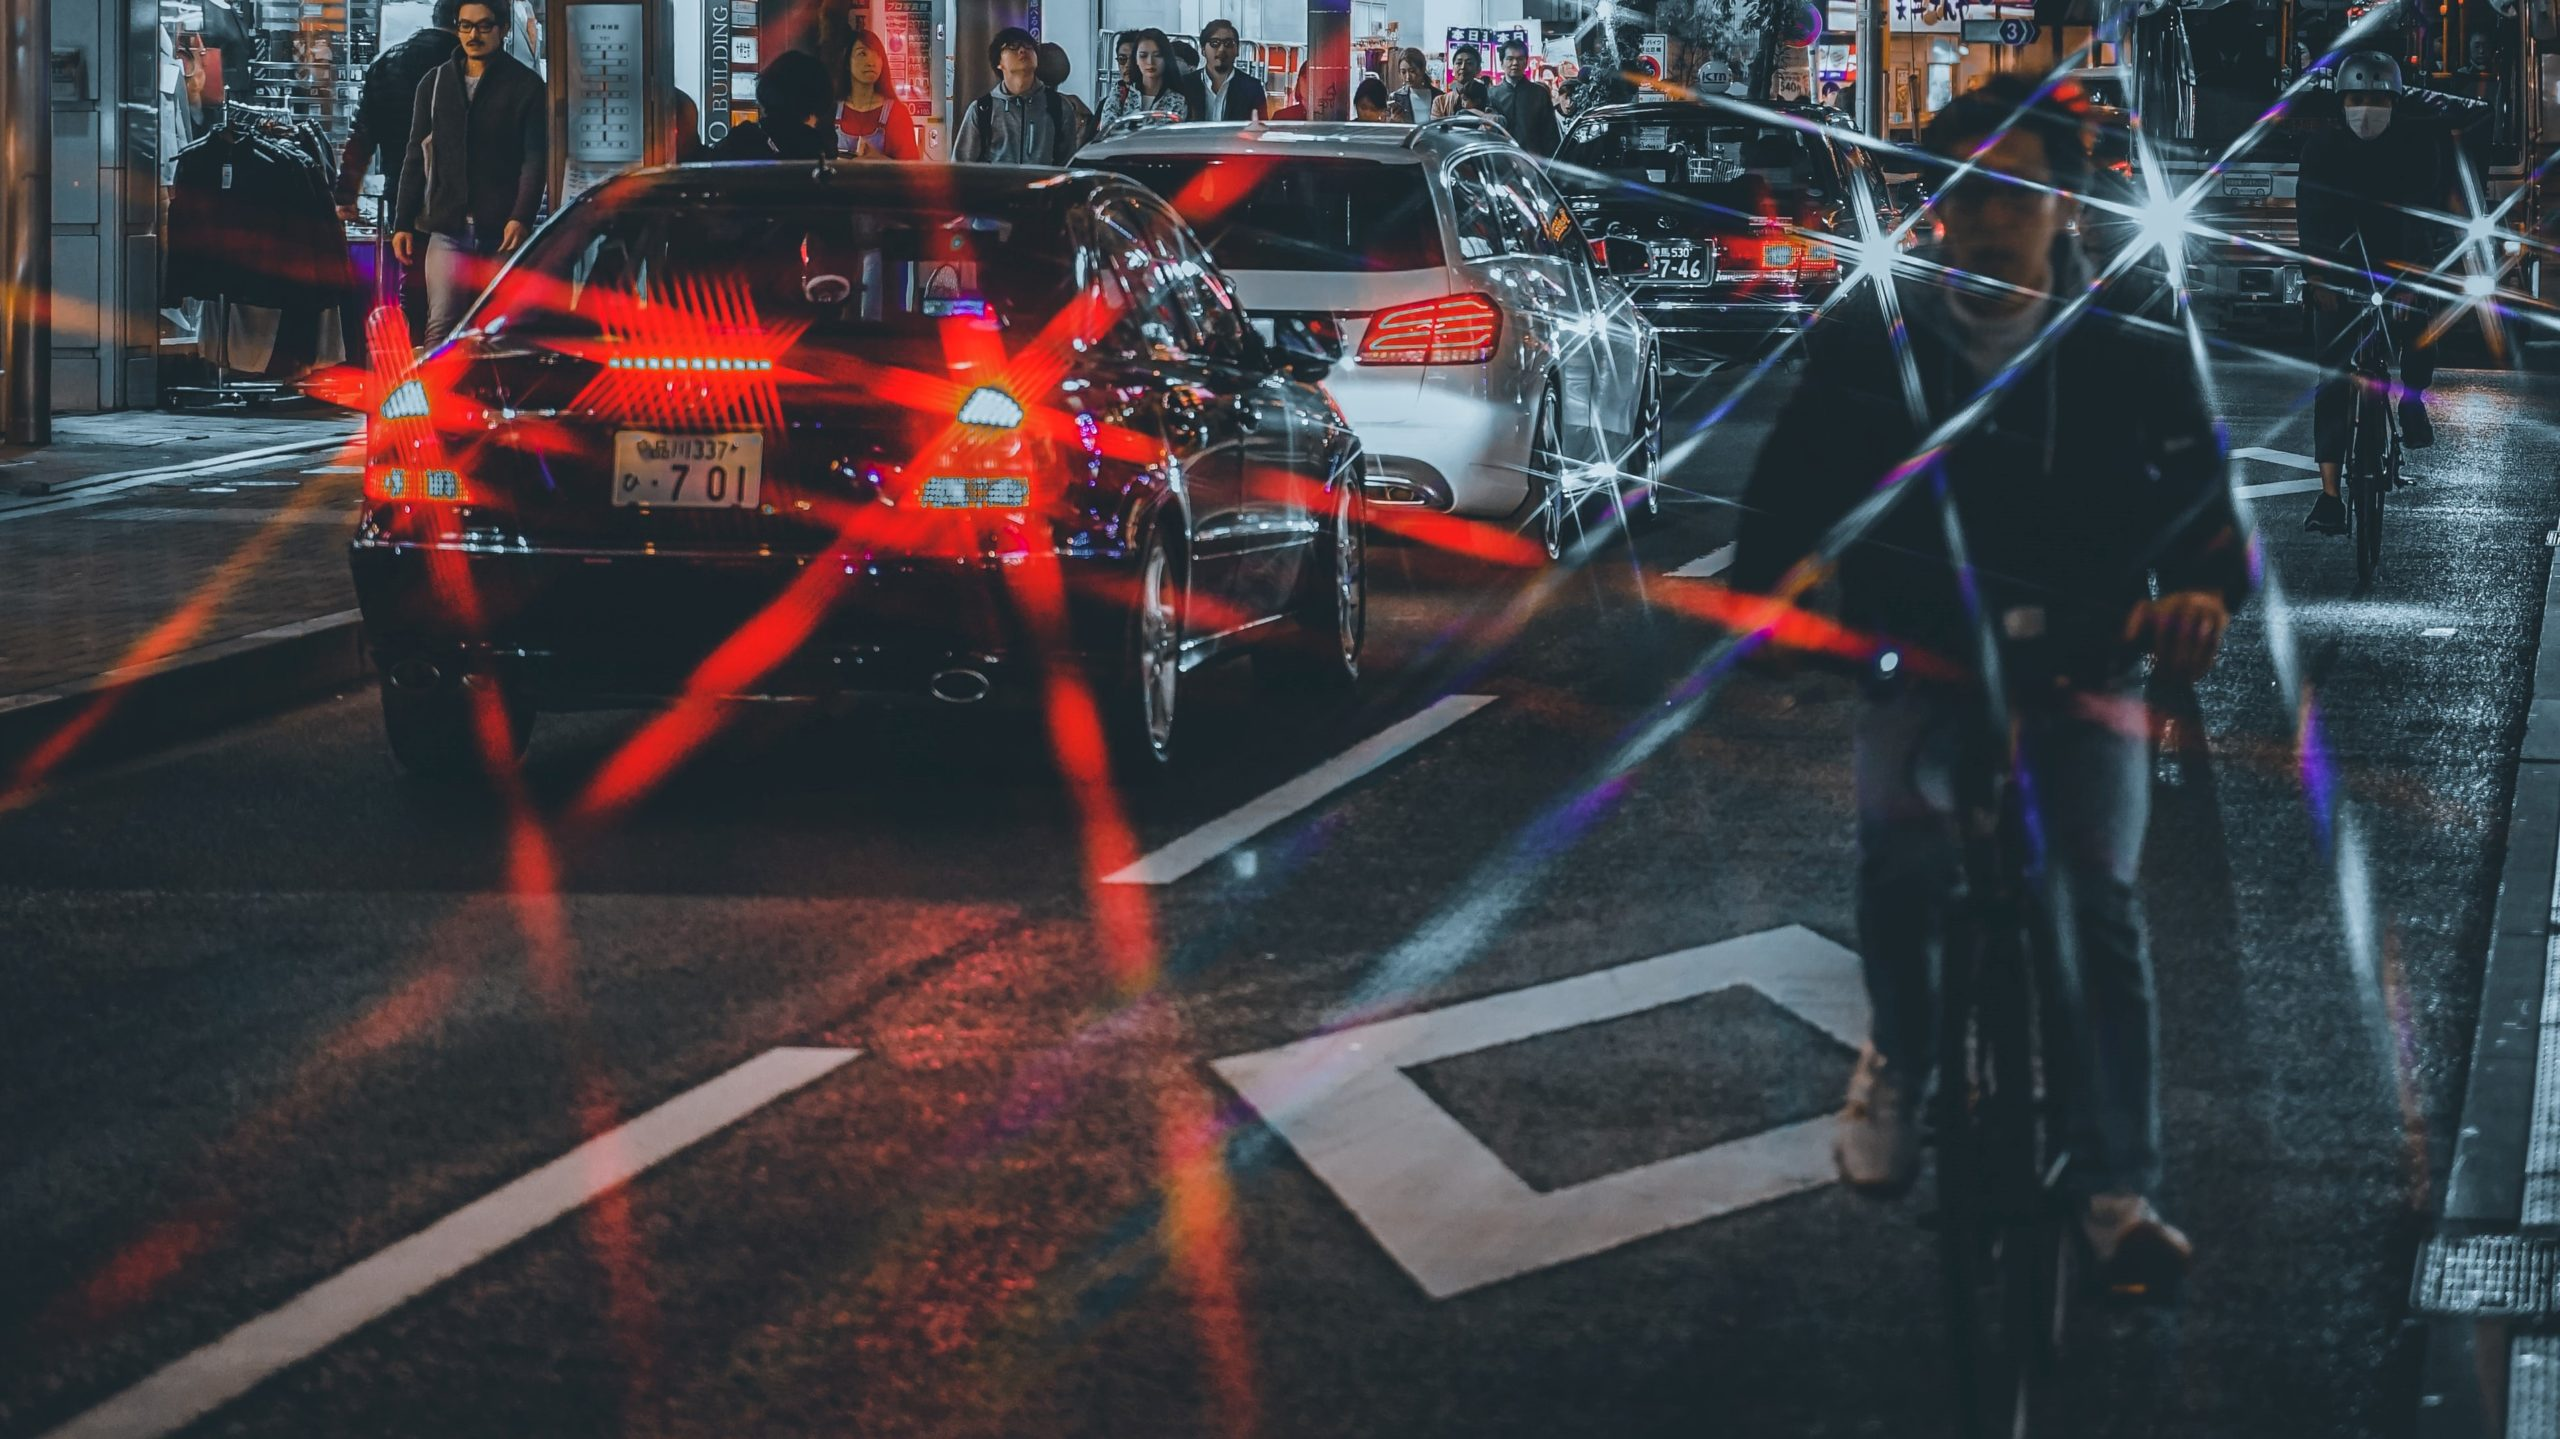 The importance of lights, clothing, and reflectivity when riding at night.